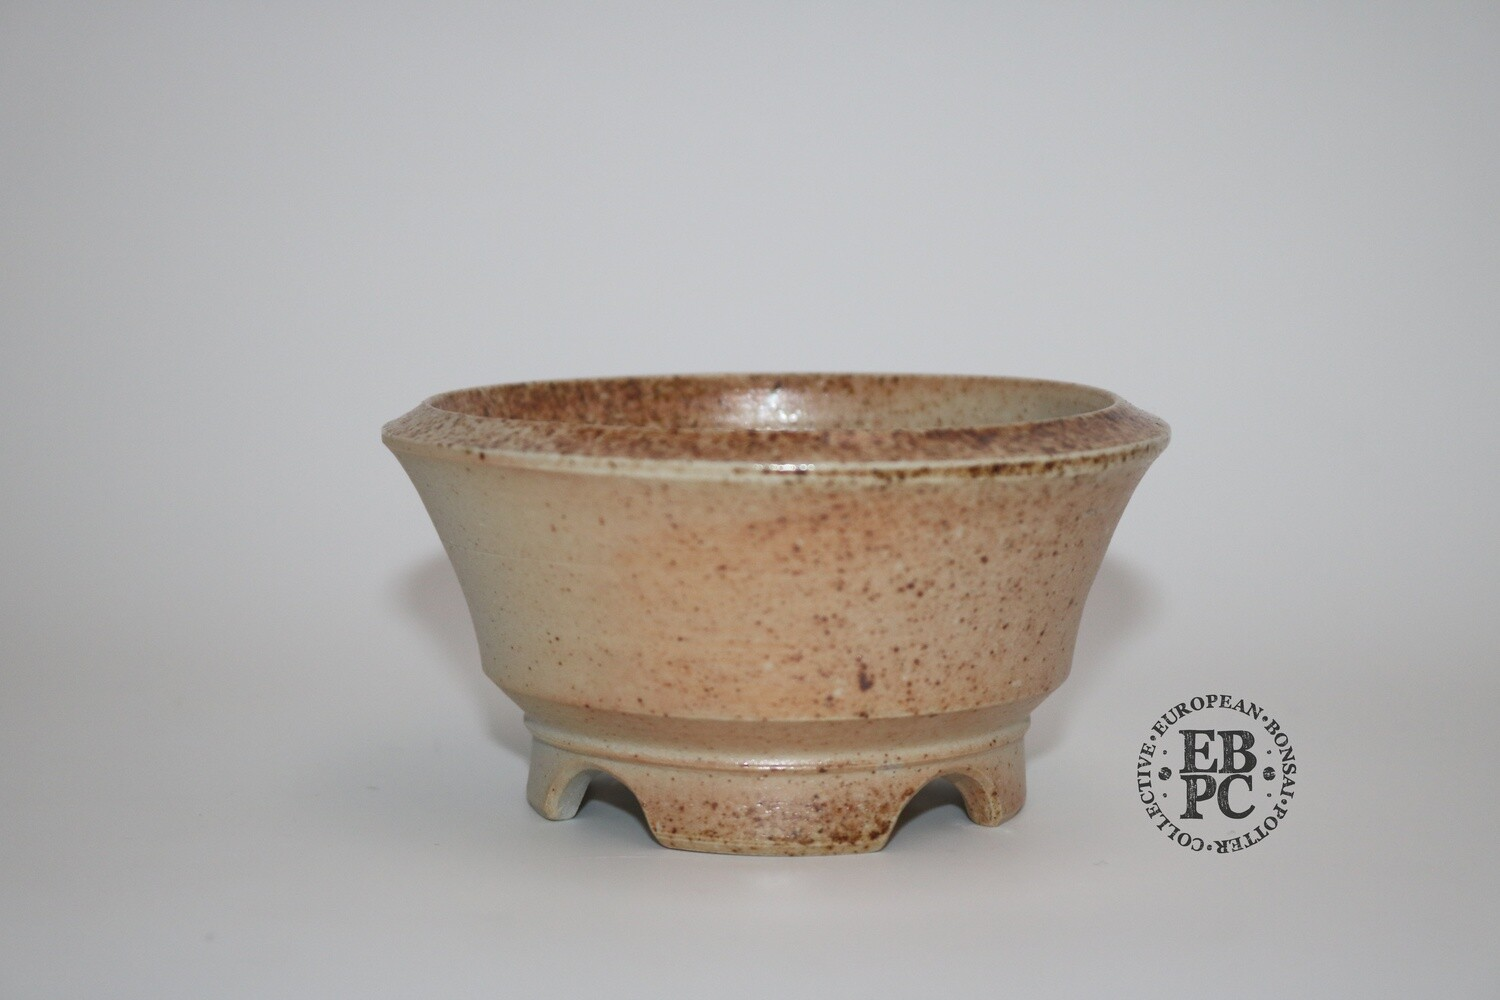 Gramming Pots - 10cm; Round; Wood-fired; Unglazed; Tomas Gramming